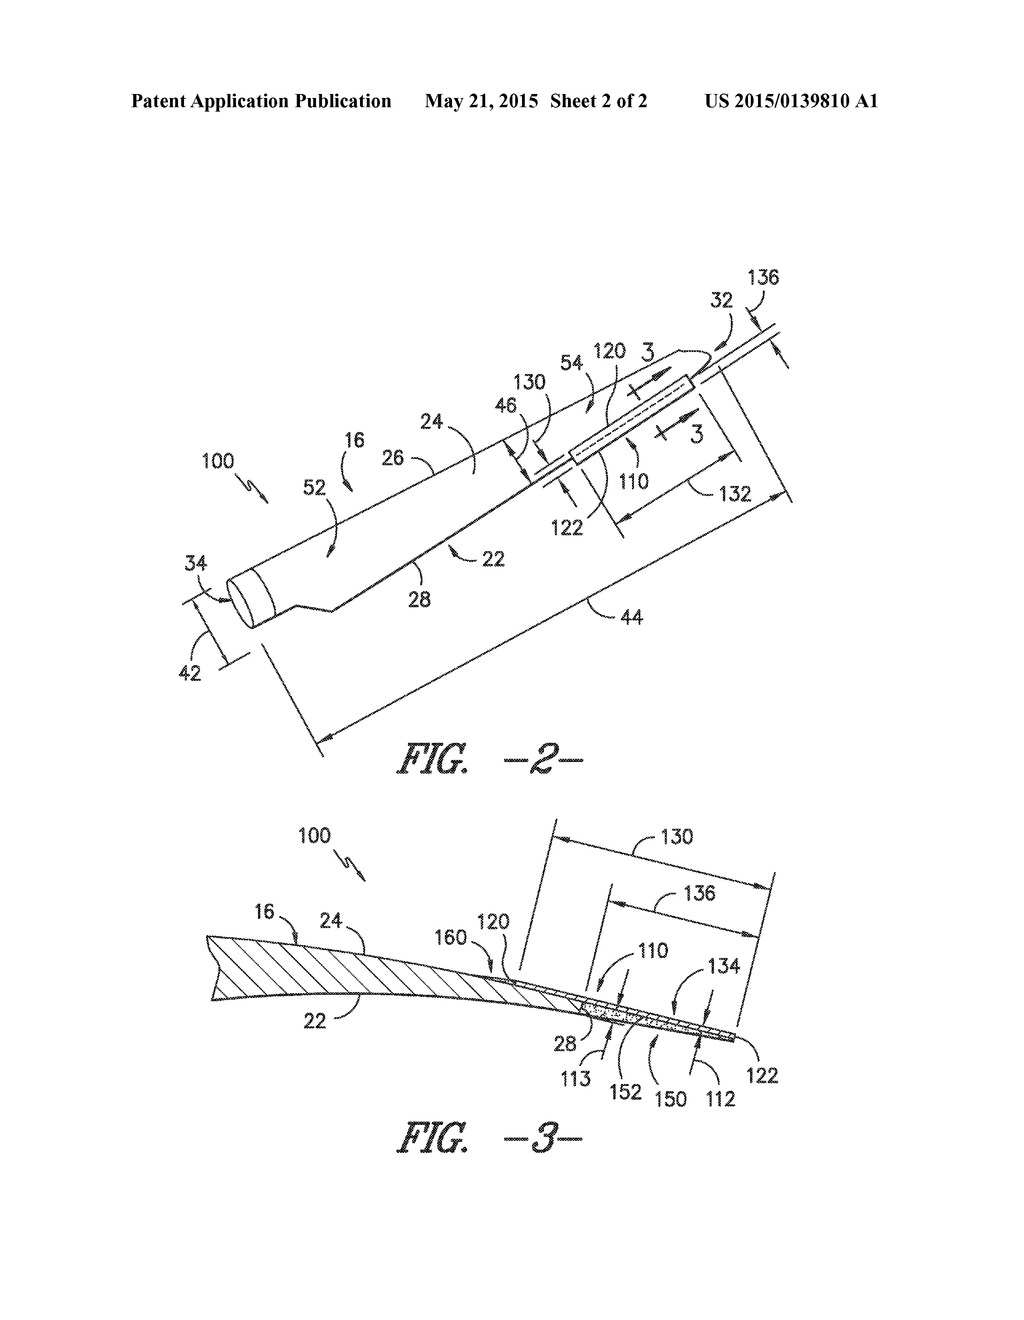 hight resolution of noise reducing extension plate for rotor blade in wind turbine diagram schematic and image 03